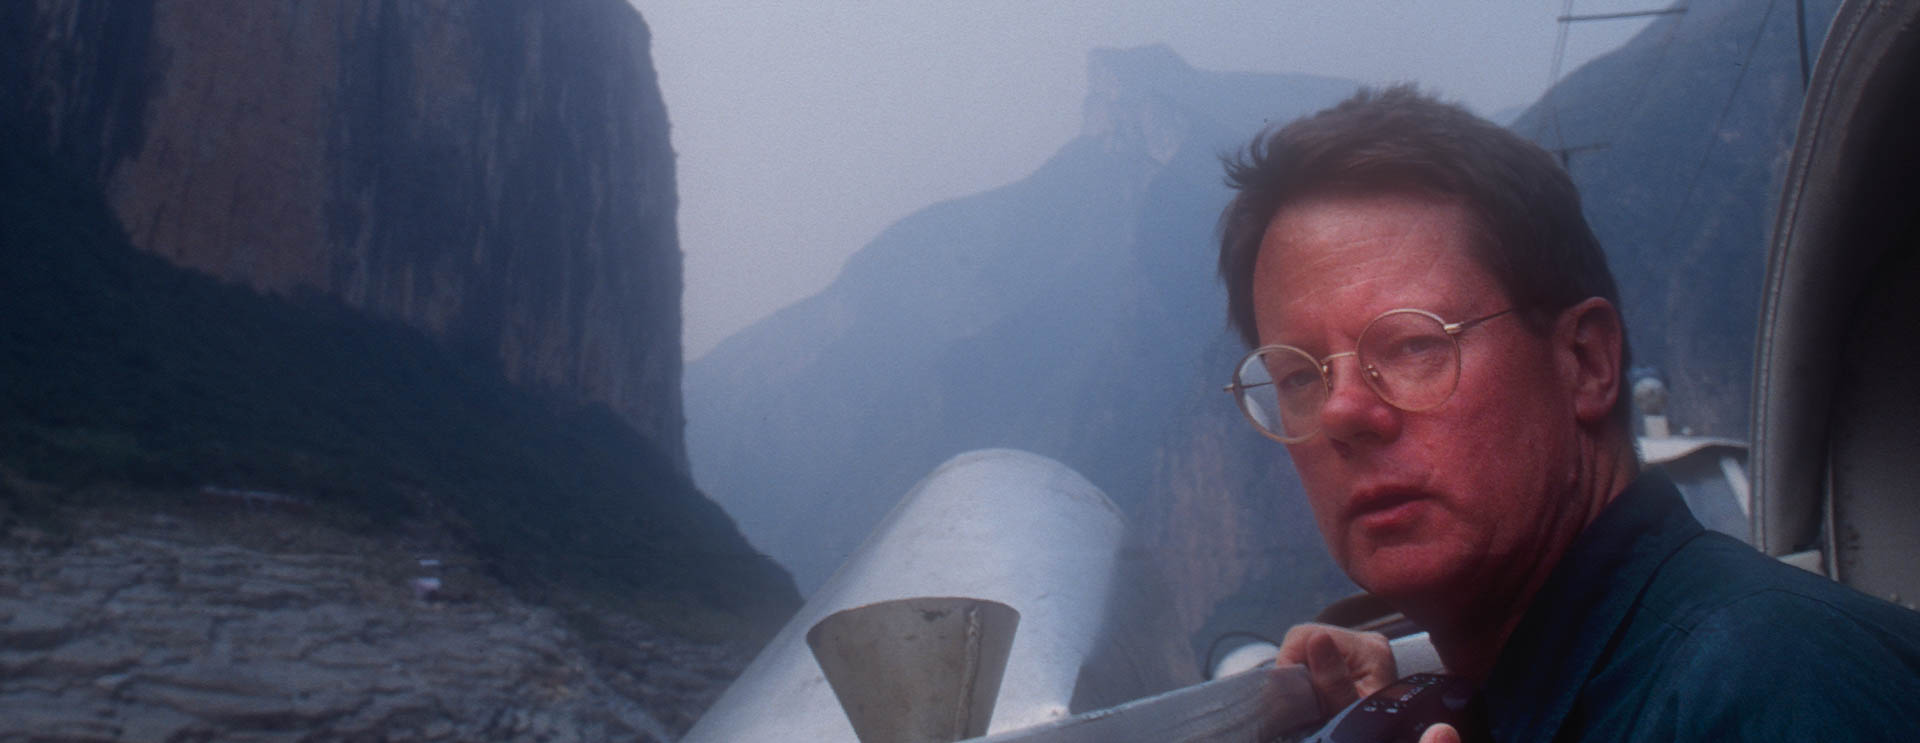 Rik Paulsen under Jay's wire in Qutang Gorge in Fengjie, China, in October 1995.